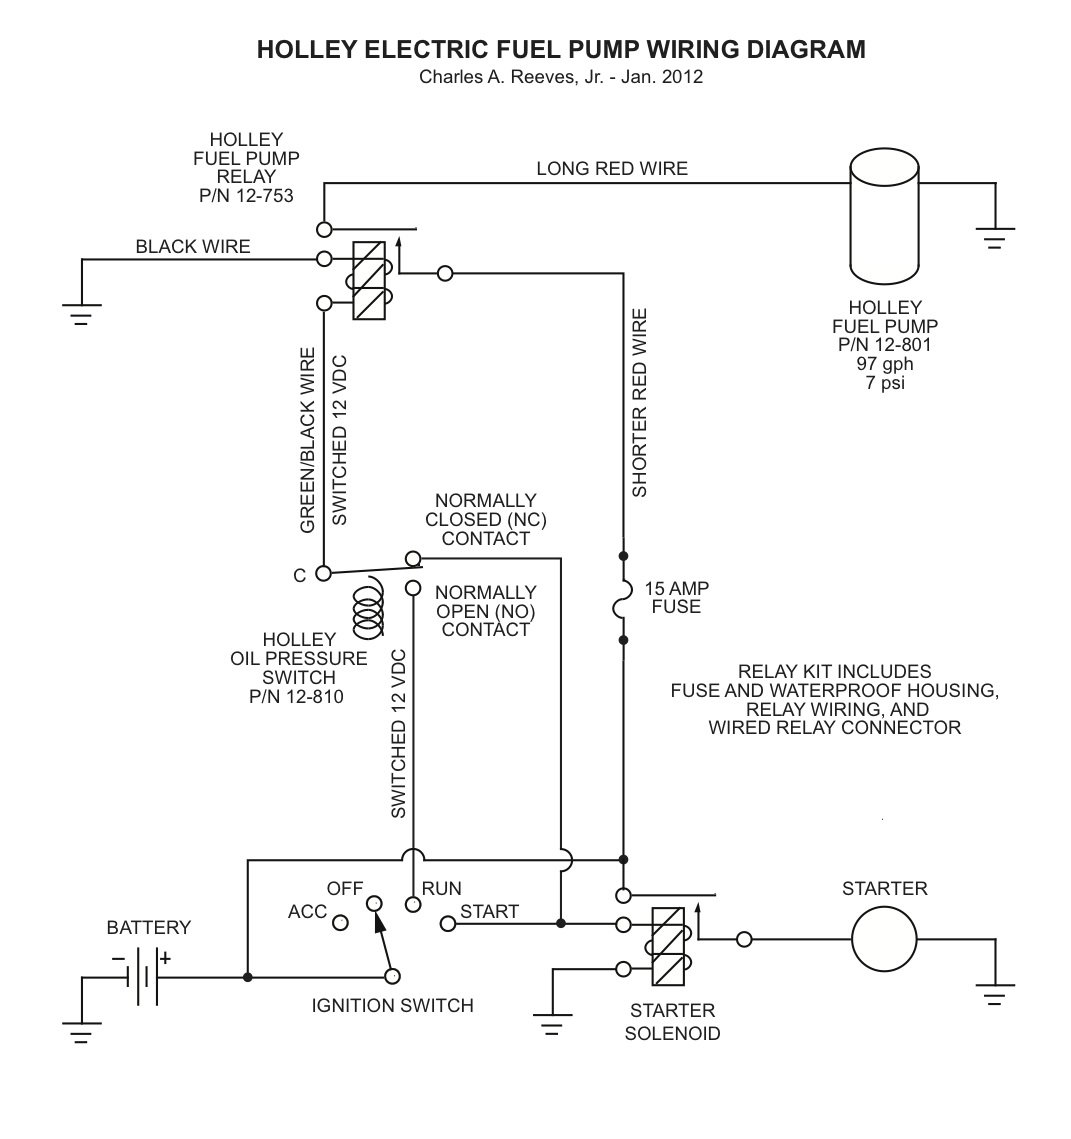 Fuel Pump Relay Oil Switch Wiring Diagram 41 Images Chevy 1997 146291d1325616423 Installing Holley Electric 1966 Mustang Elect A